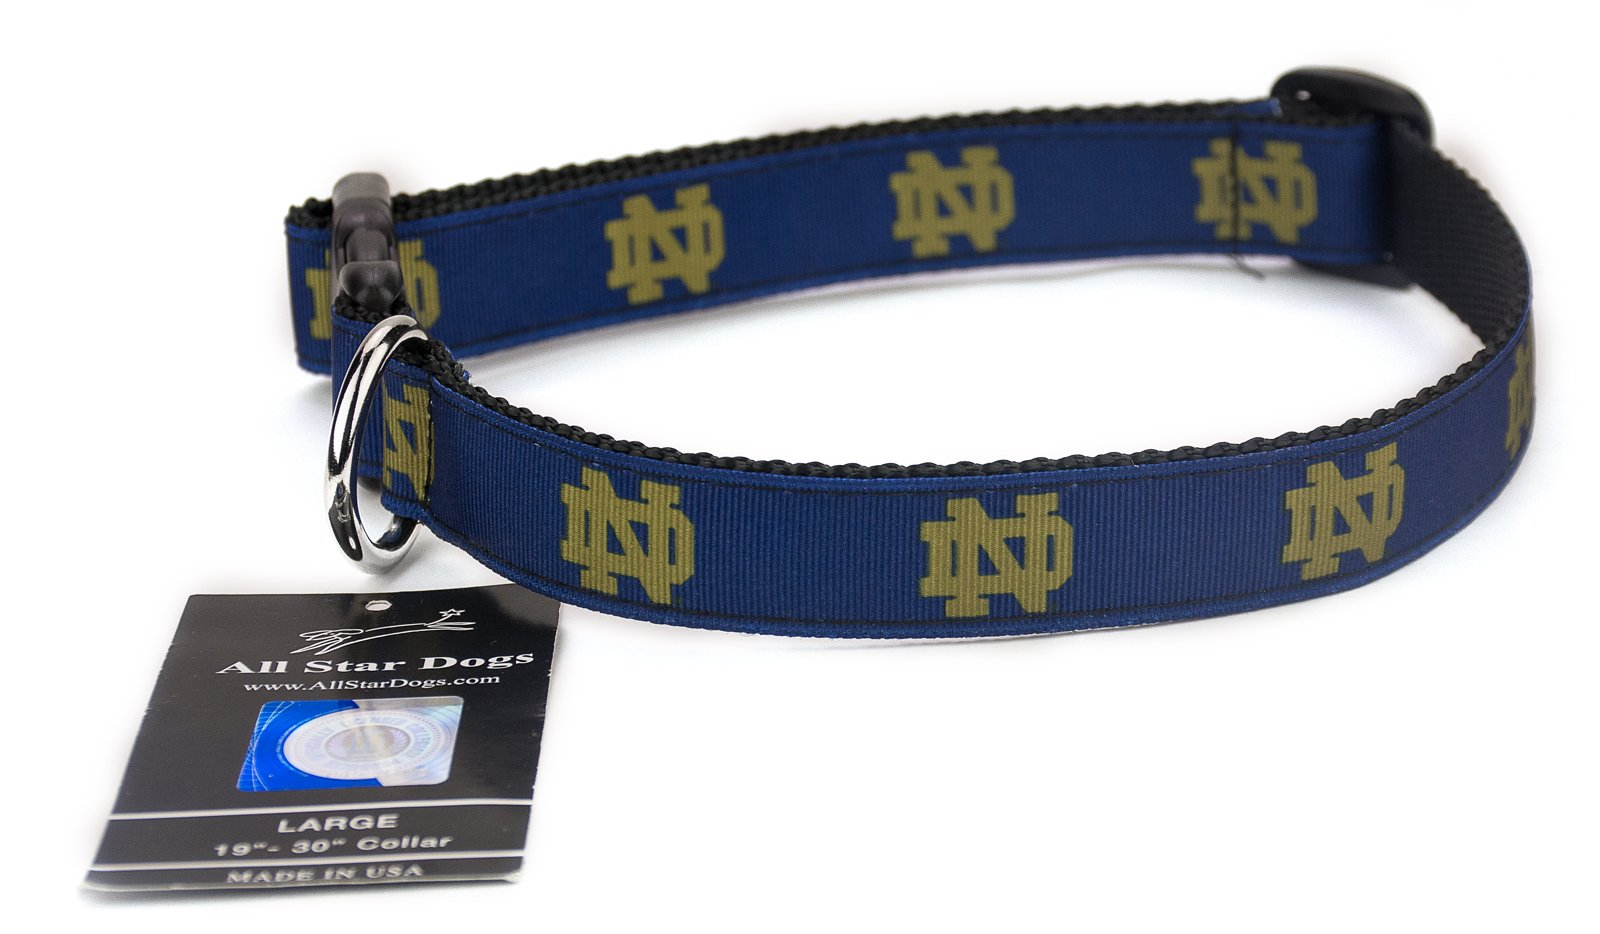 All Star Dogs Notre Dame Ribbon Dog Collar - Large by All Star Dogs (Image #1)